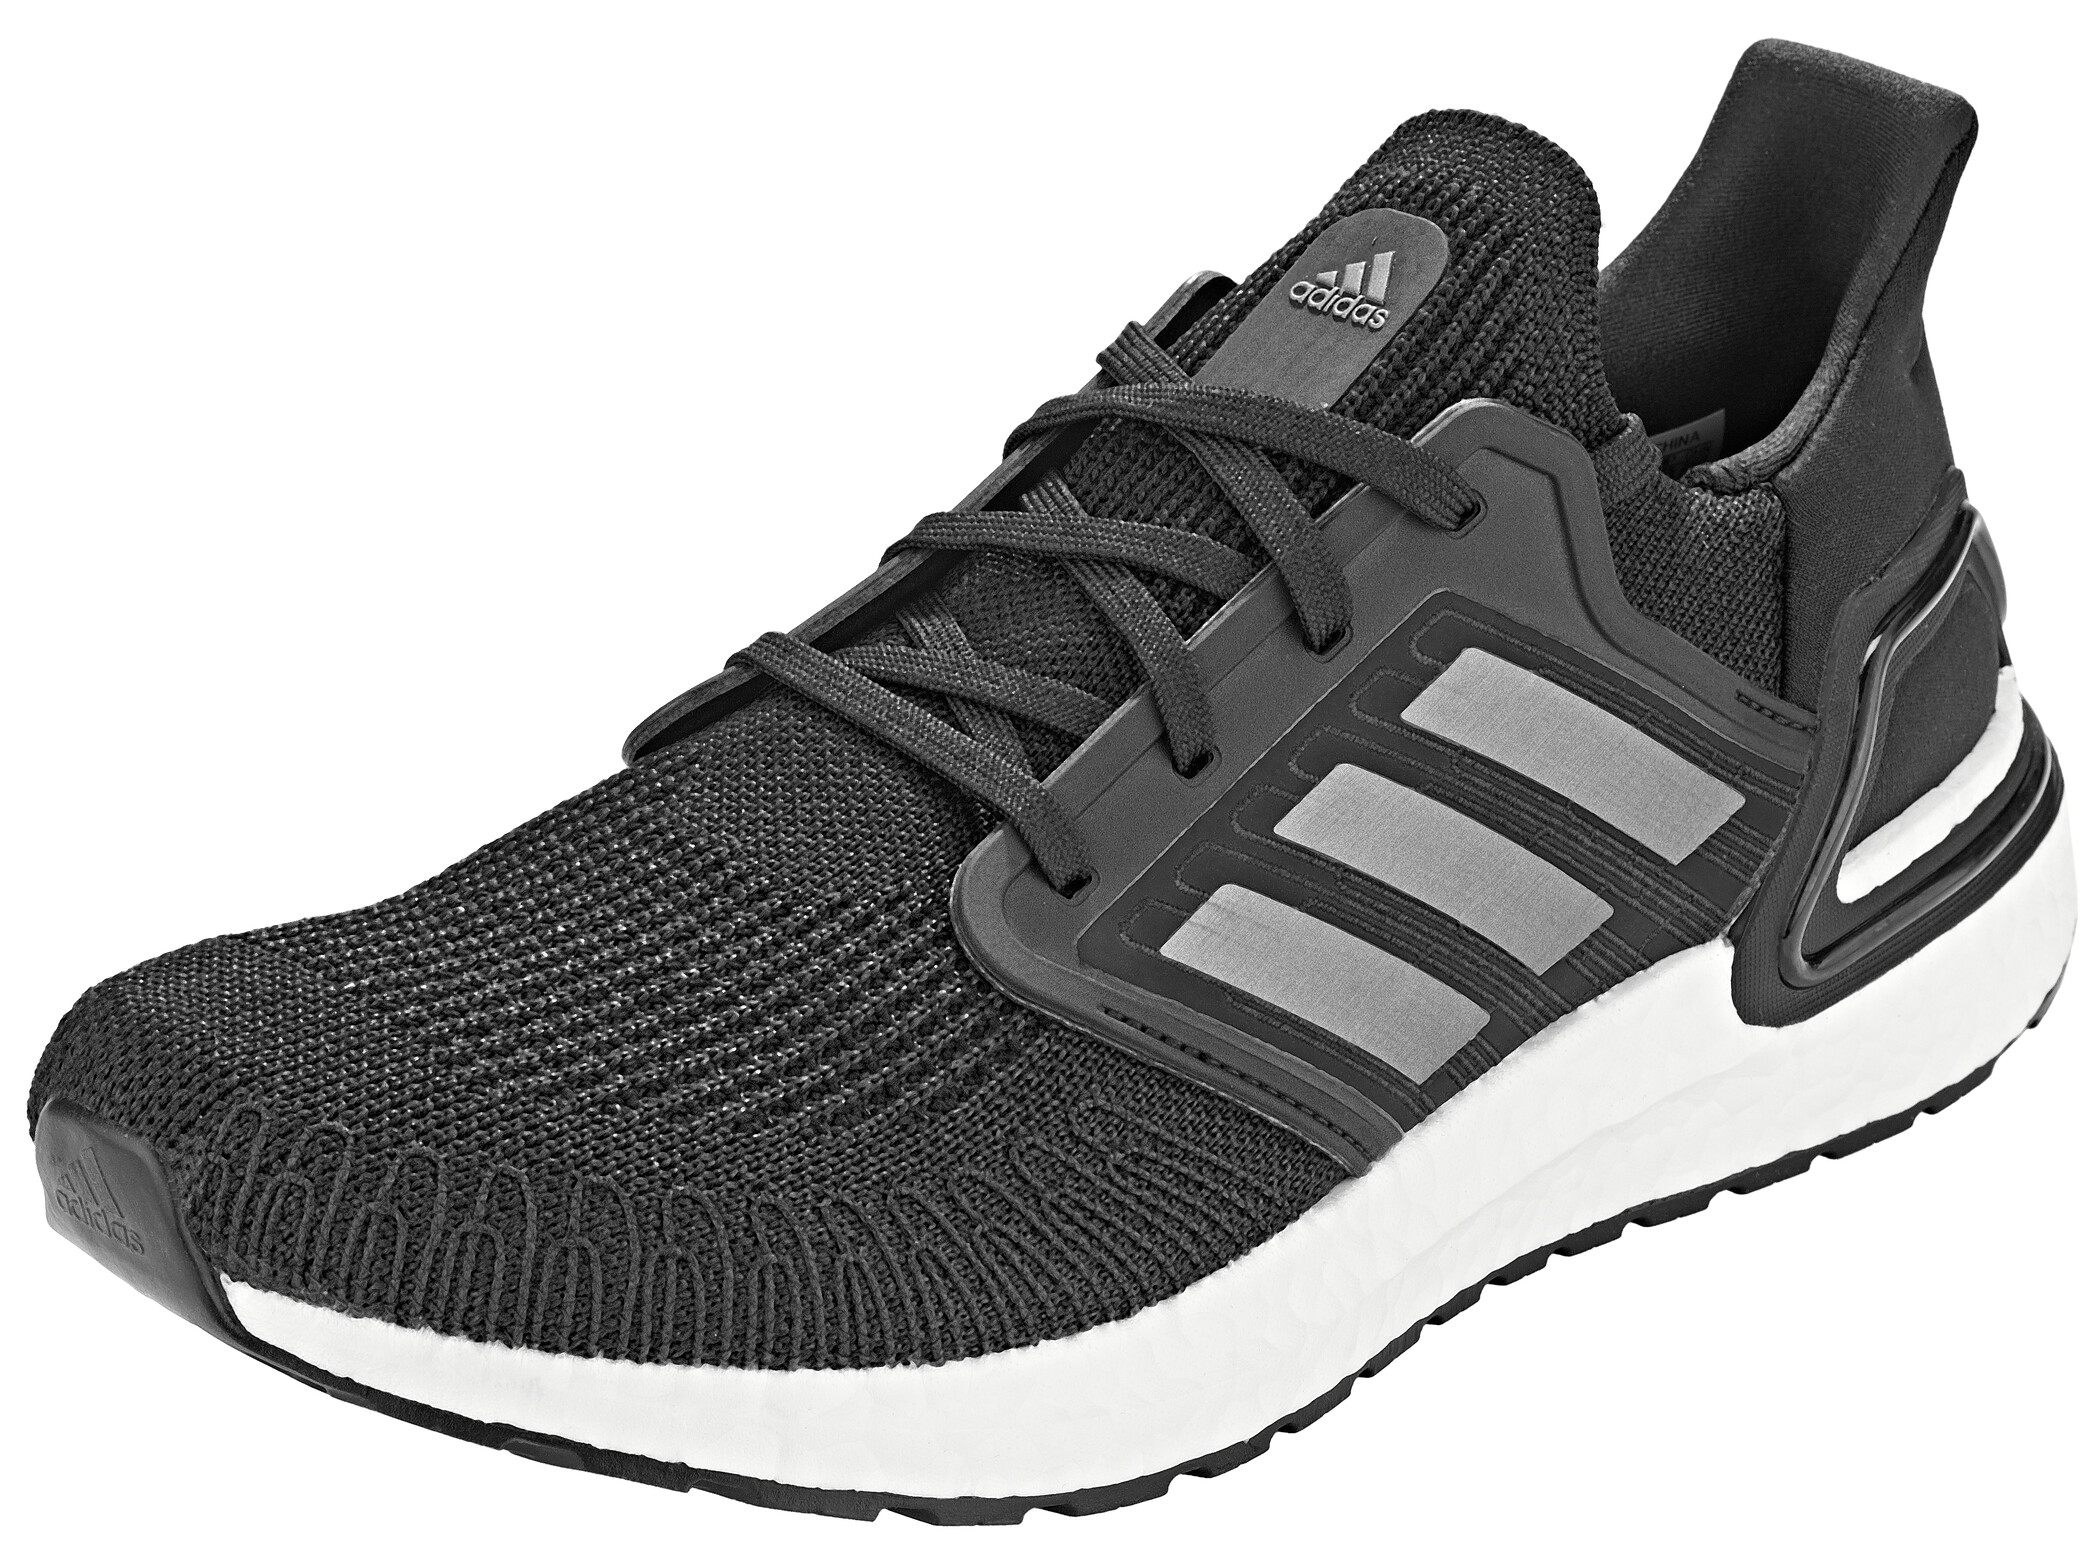 Details about NEW Authentic Adidas Men's Ultraboost 20 Running Shoes Ultra Boost 2020